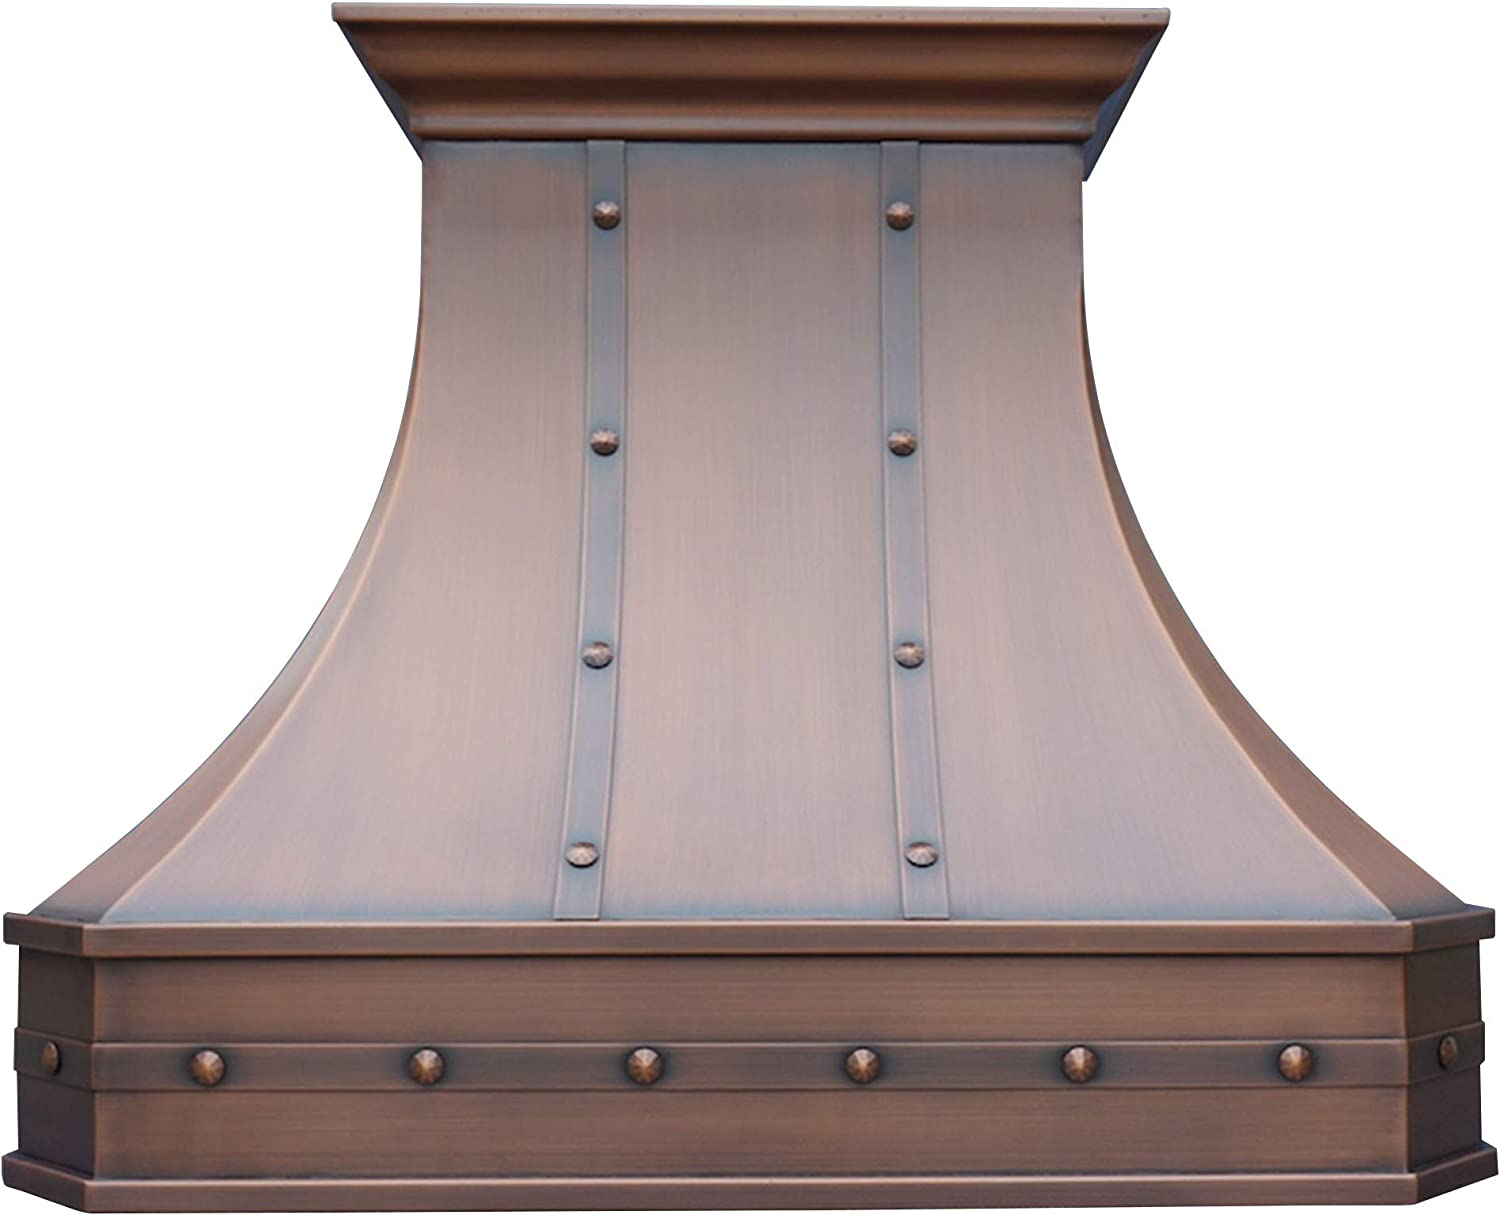 "SINDA Hand-Crafted Copper Kitchen Vent Hood, Stainless Steel Hood Vent, H3STRW3630, 36""Wx30""H, Wall Mount, Smooth Texture-Antique Copper"